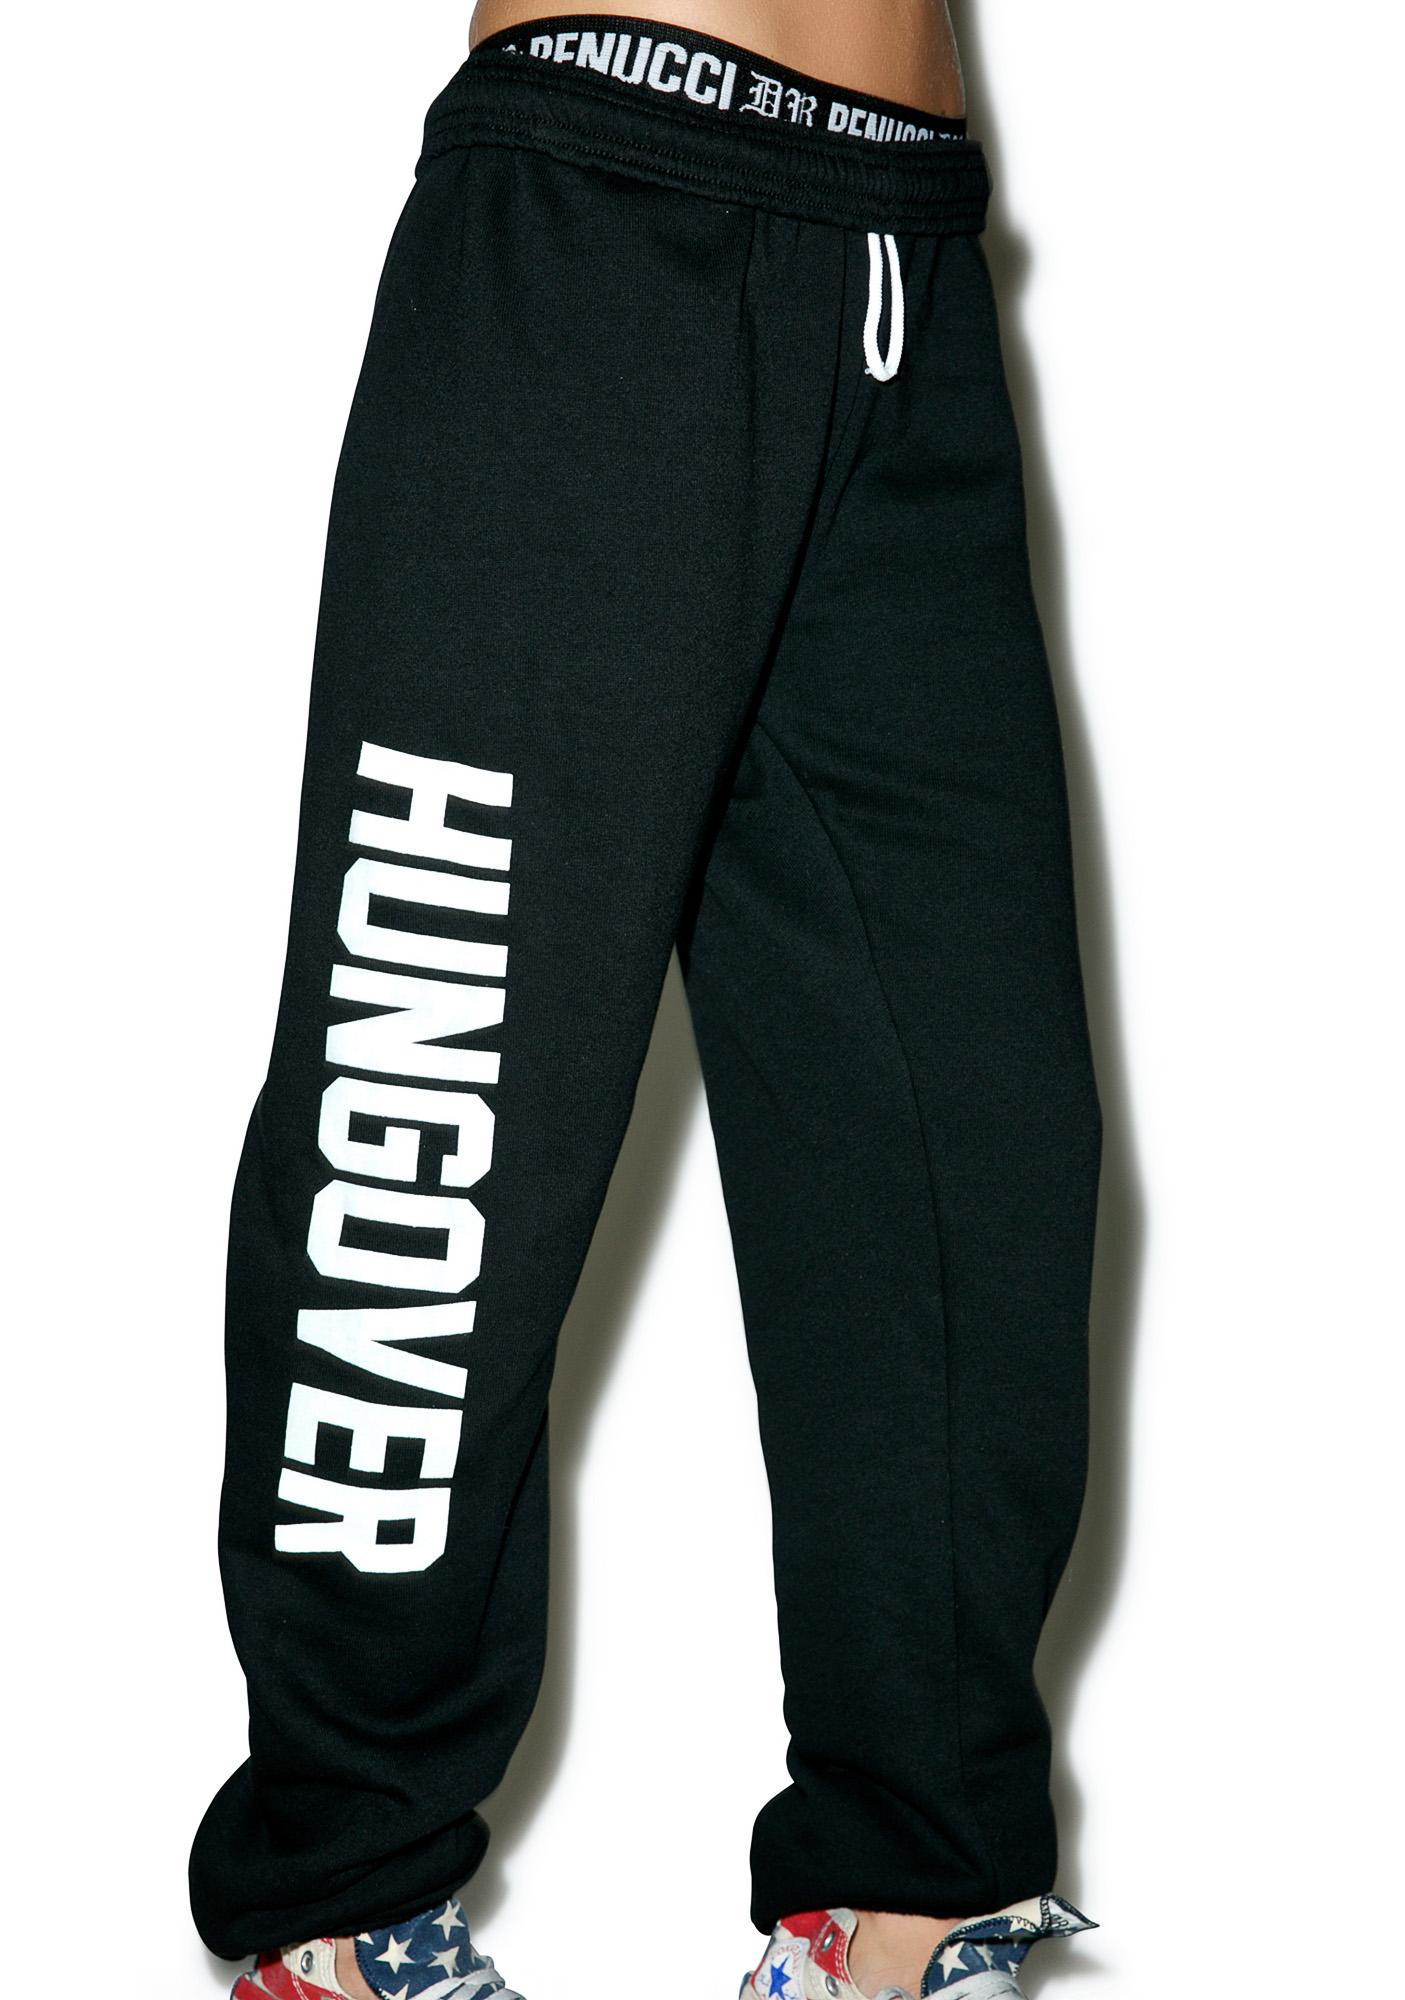 Private Party Hungover Sweatpants